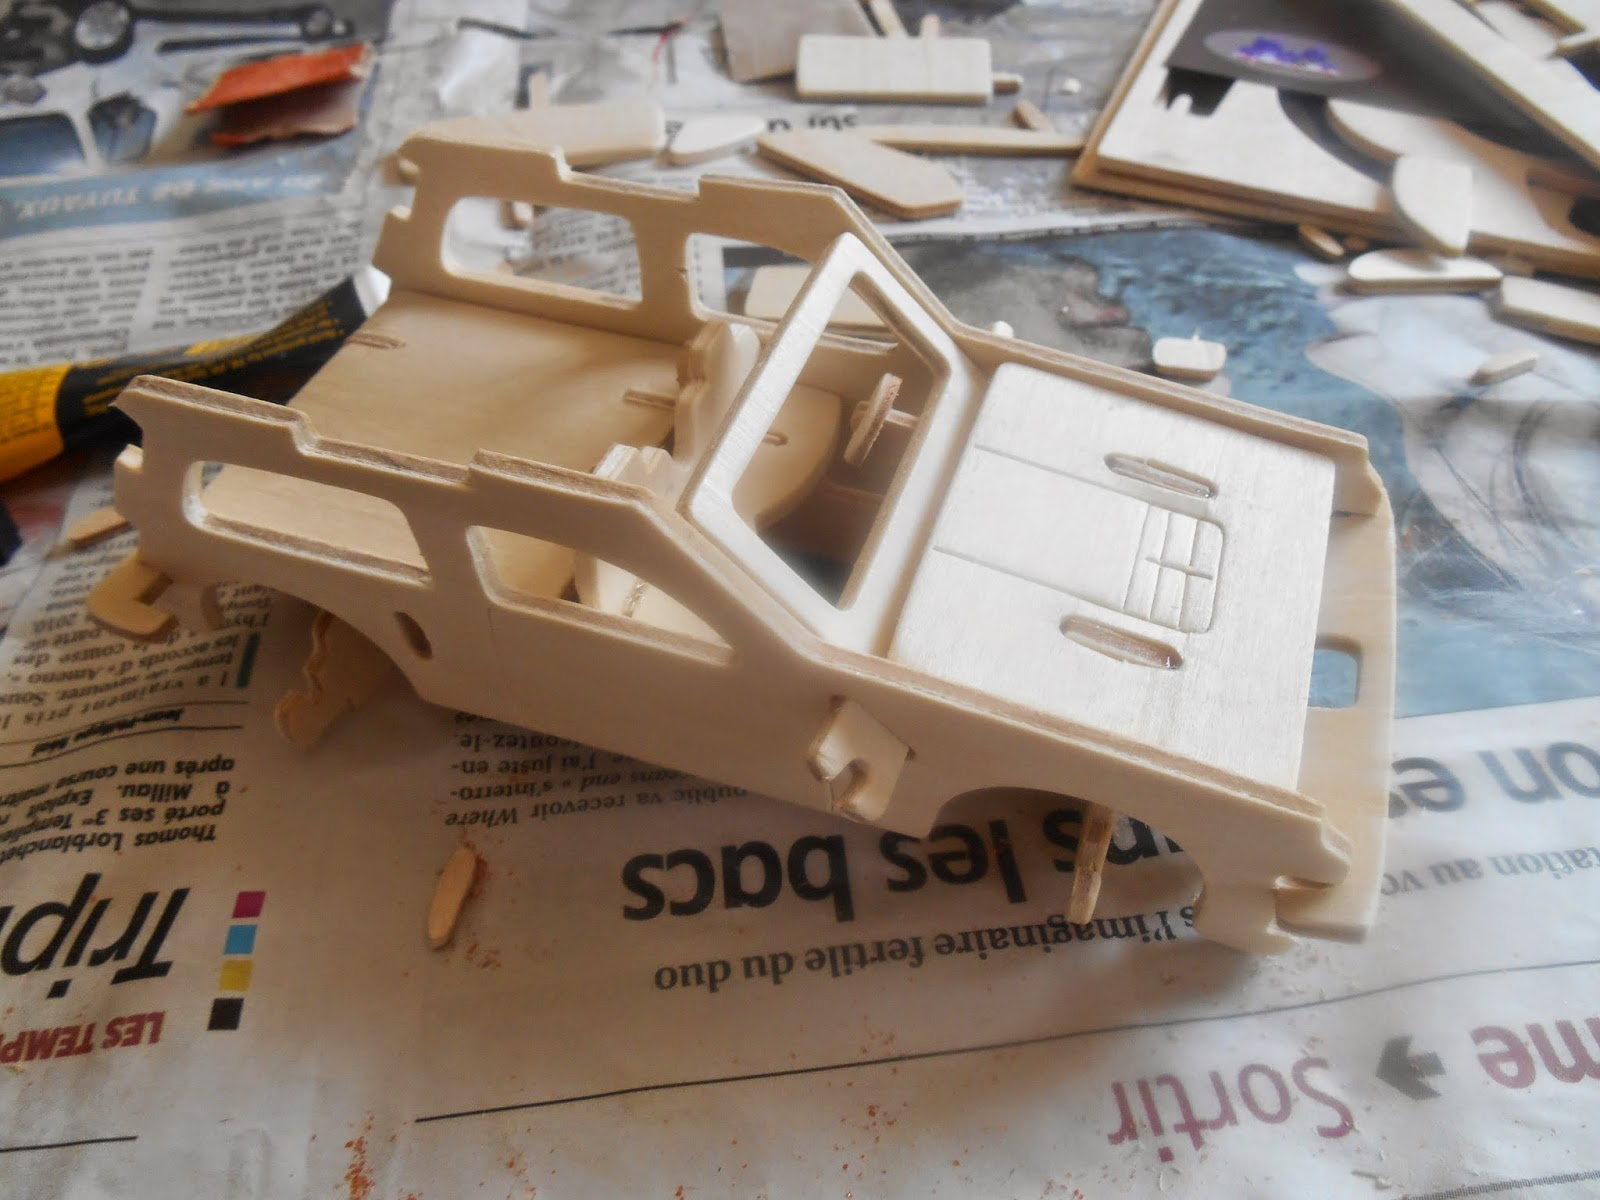 maquettes et miniatures maquette en bois r5 gt turbo rally. Black Bedroom Furniture Sets. Home Design Ideas